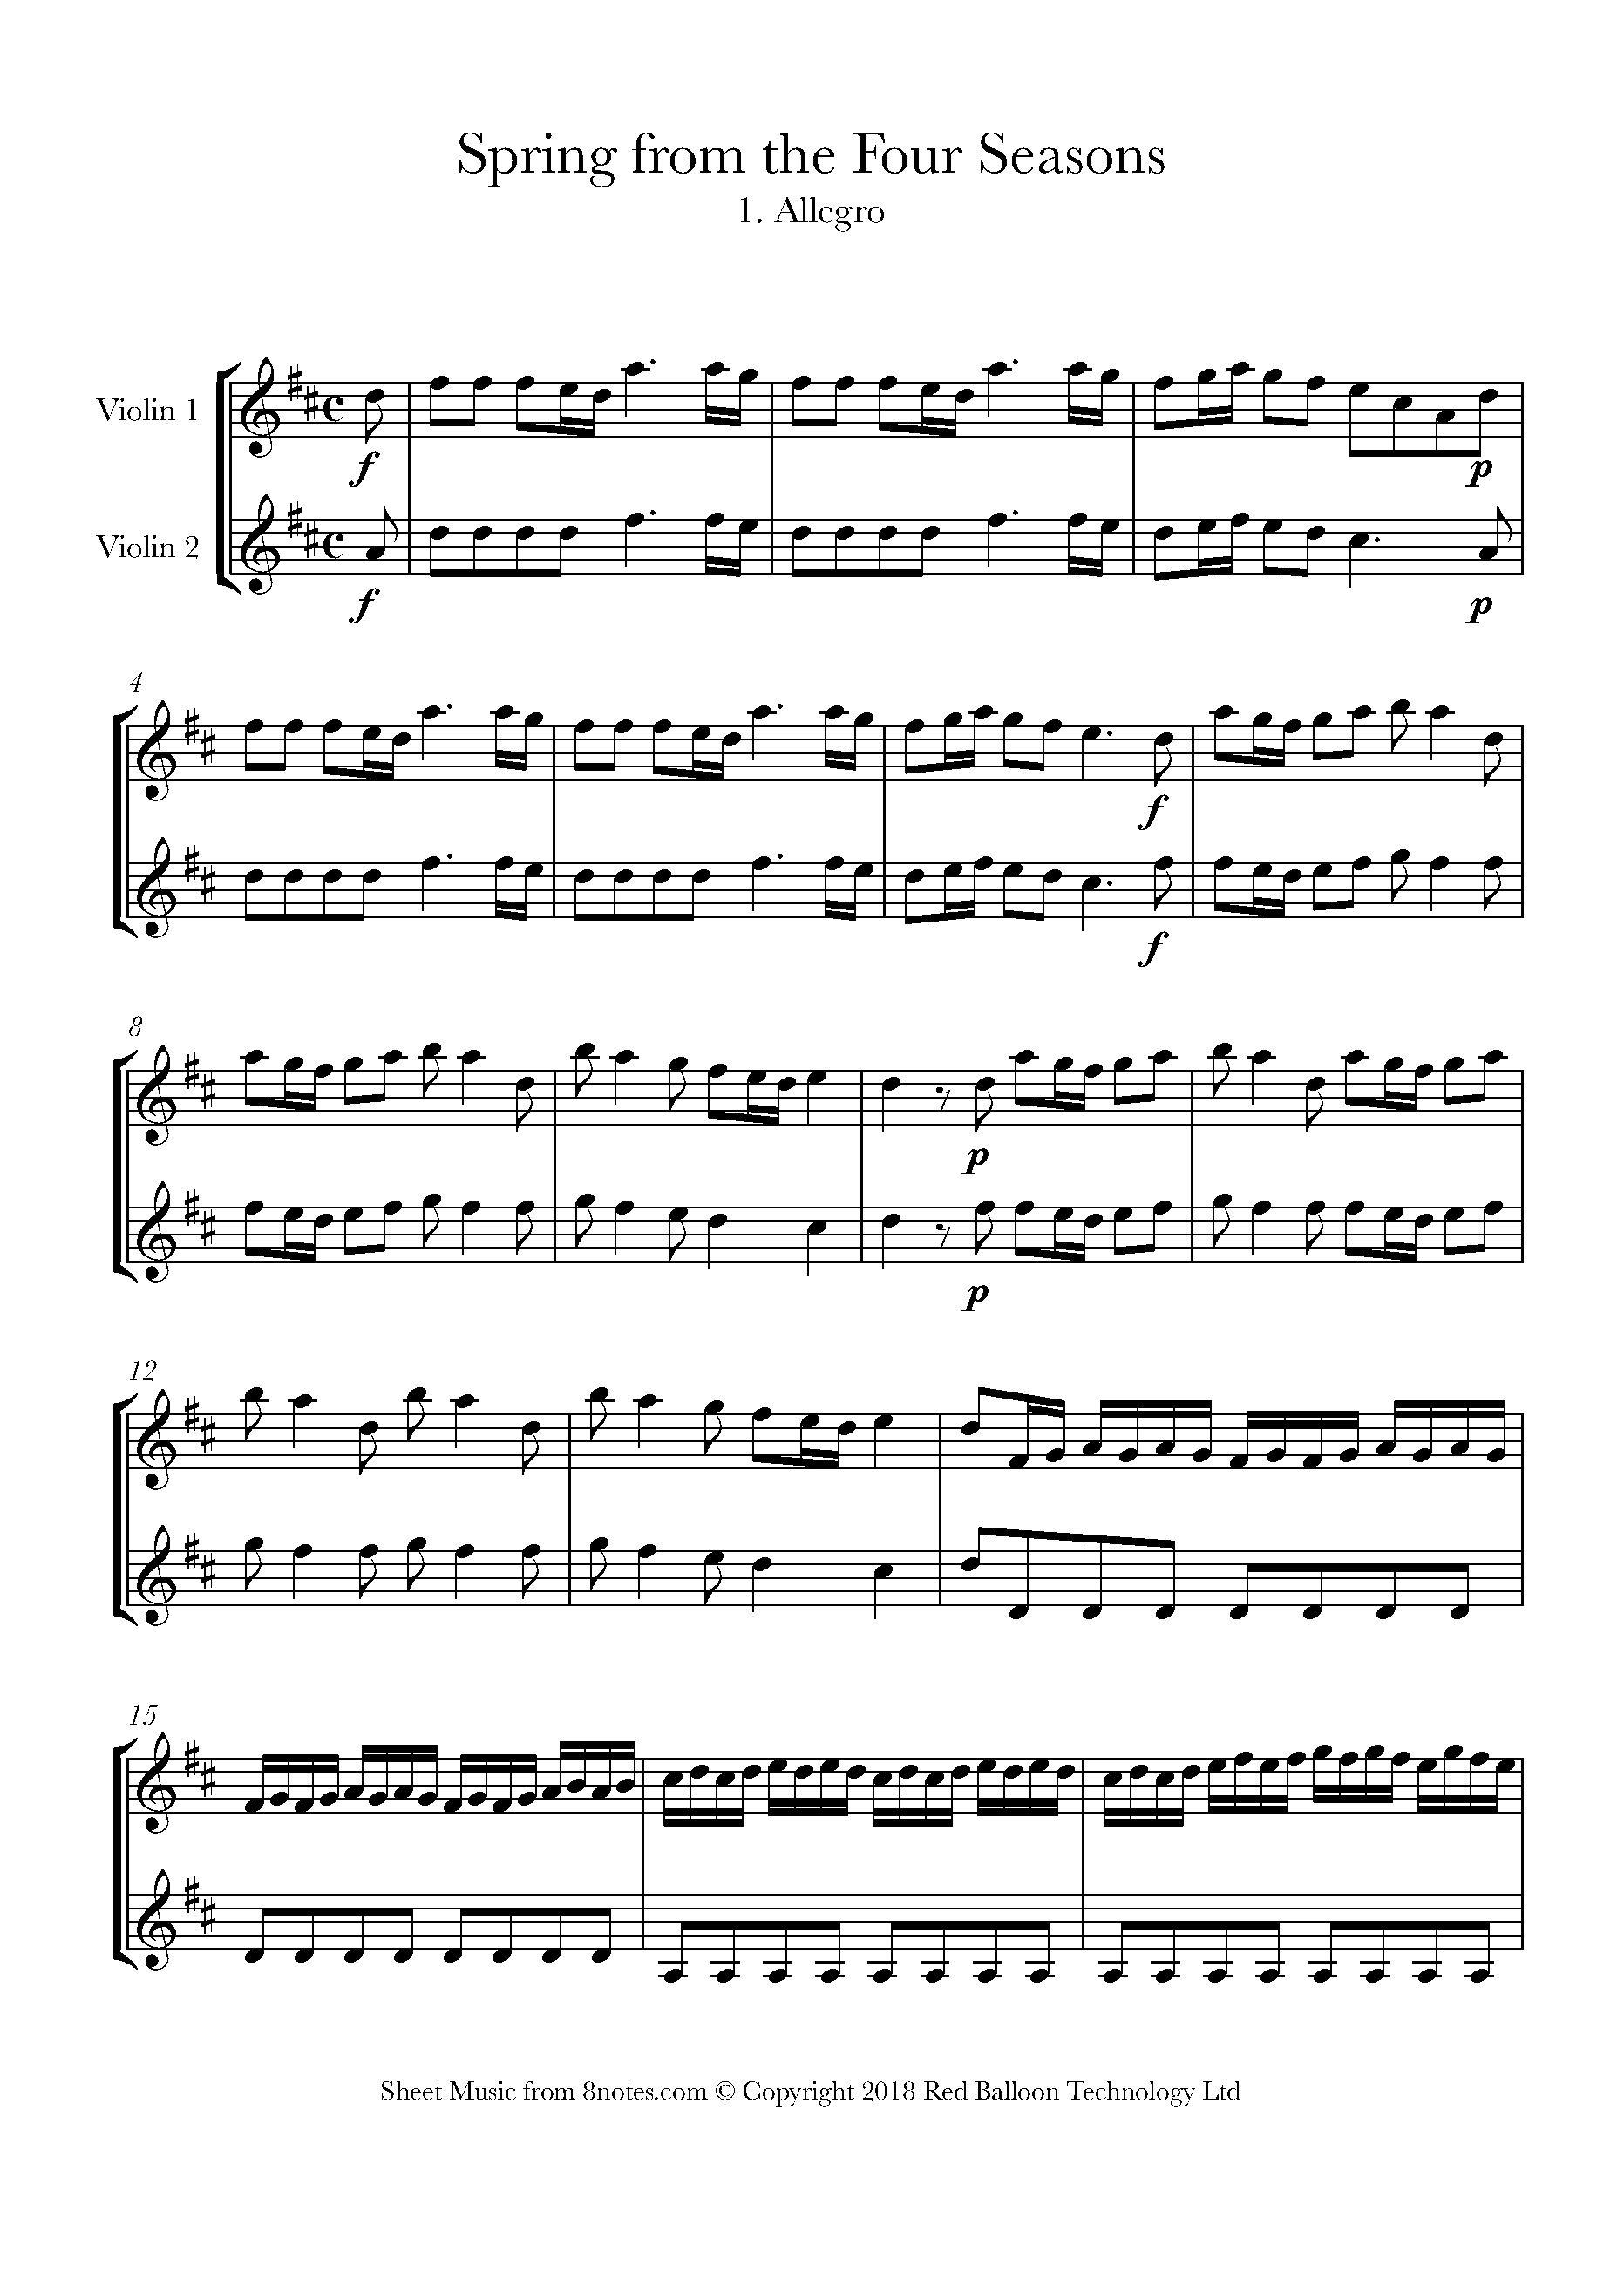 vivaldi - spring from the four seasons 1. allegro sheet music for violin  duet - 8notes.com  8notes